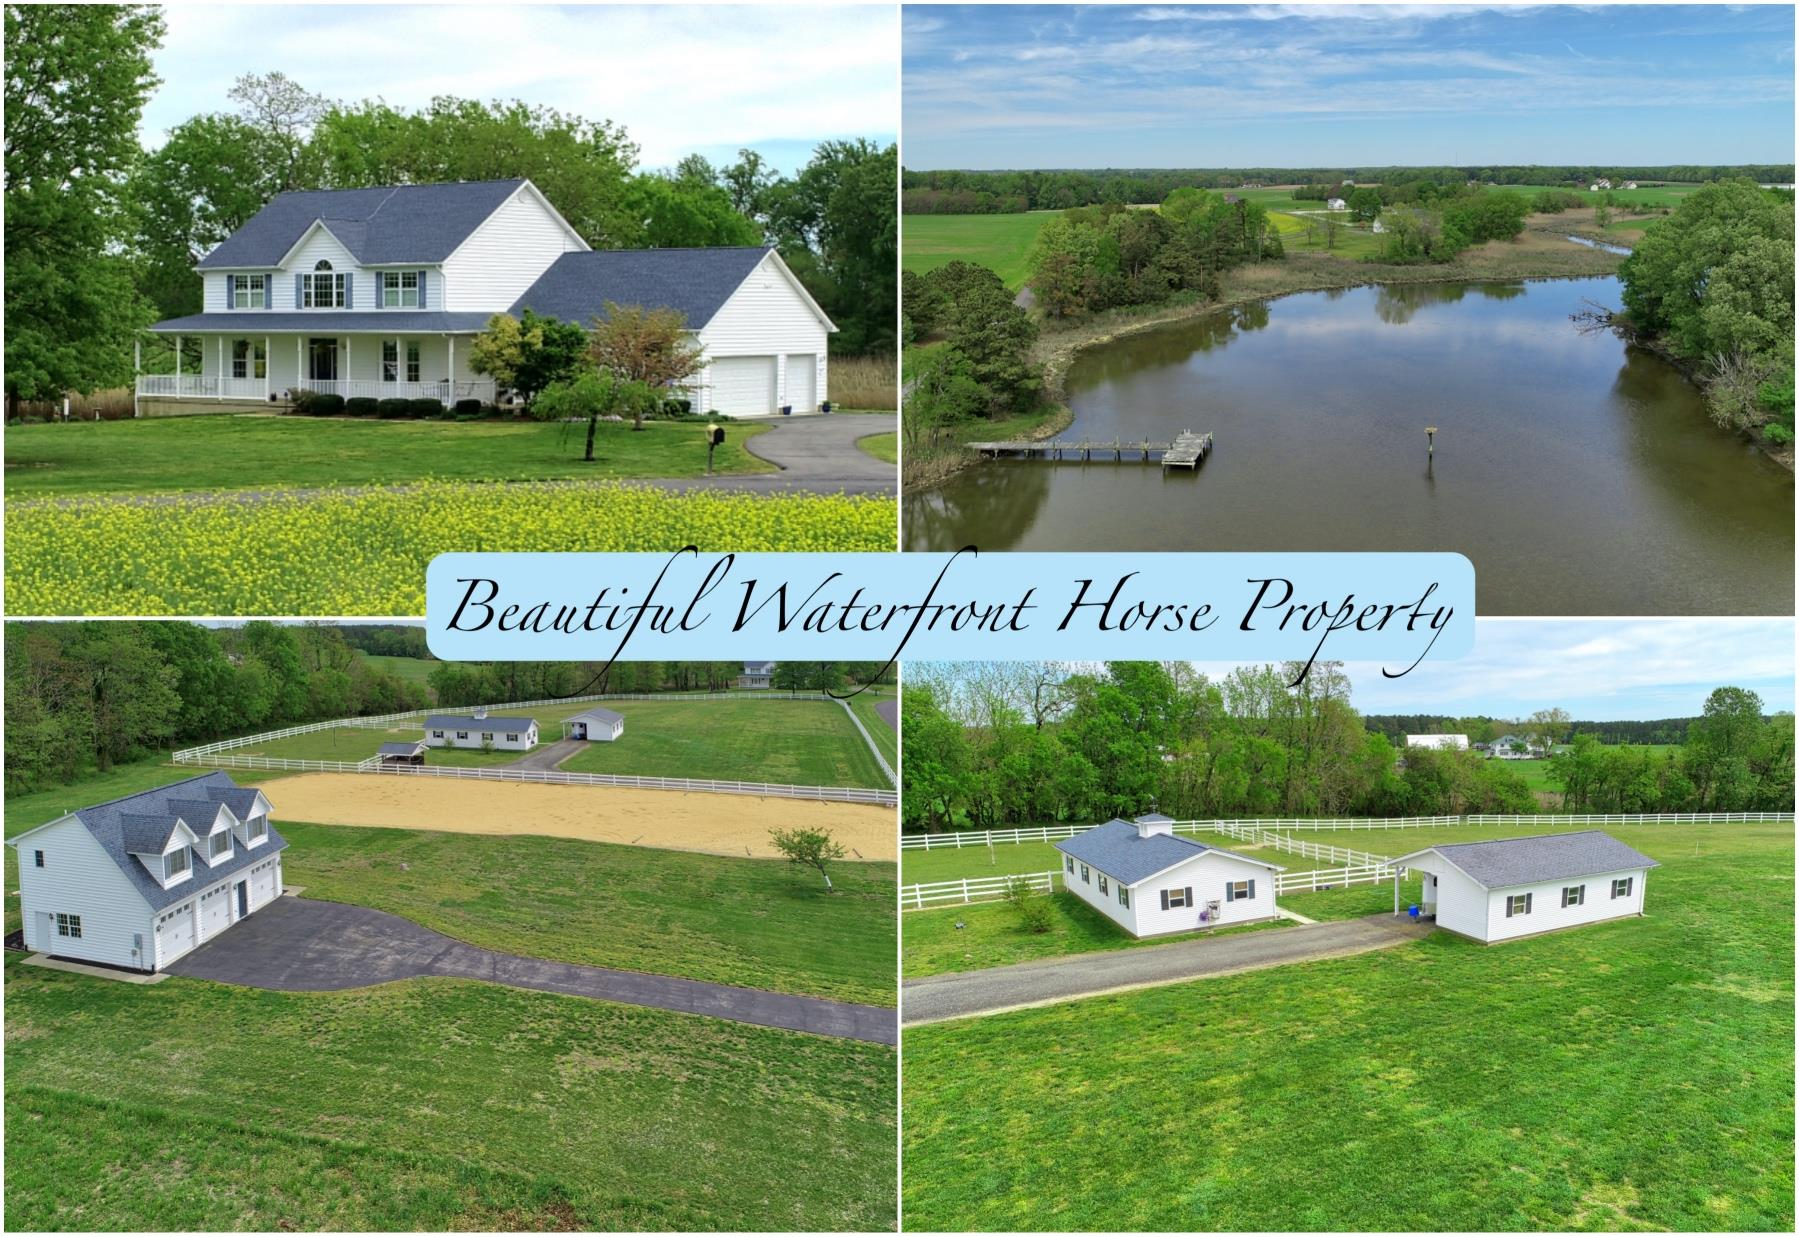 21581 Montfort Road, Bushwood MD - Foxwood Farm is a Waterfront Property and a Horse Property in Southern Maryland, in Saint Marys County!  Beautiful Acreage!  Country Setting! Listed by Your Southern Maryland Realtor, Marie Lally with O'Brien Realty